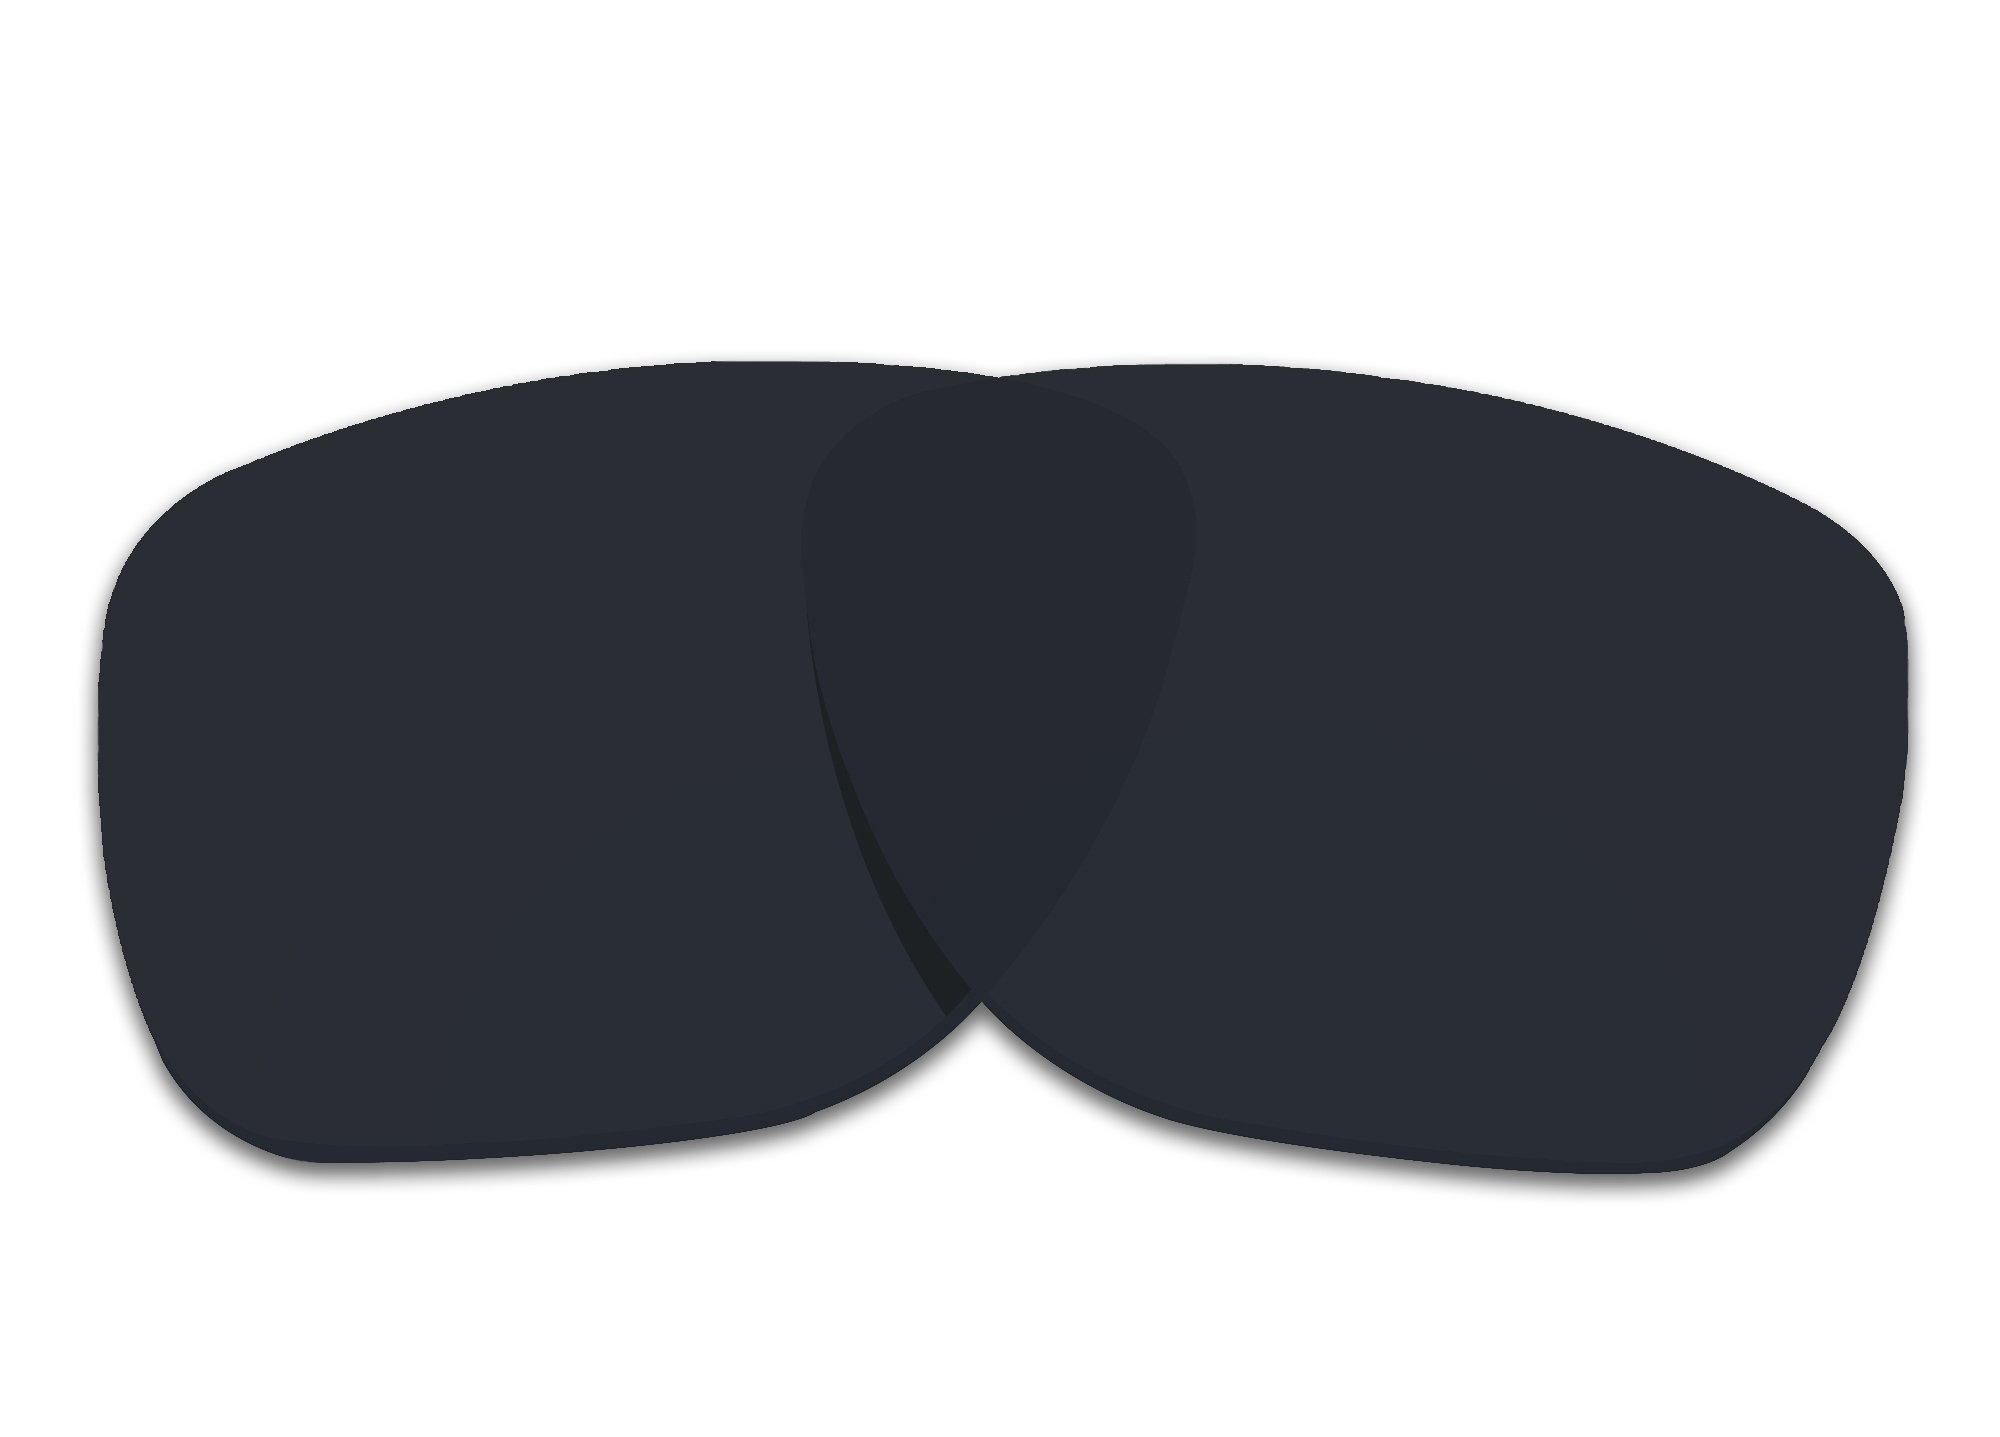 COLOR STAY LENSES 2.0mm Thickness Polarized Replacement Lenses for Oakley Crossrange XL OO9360 Black